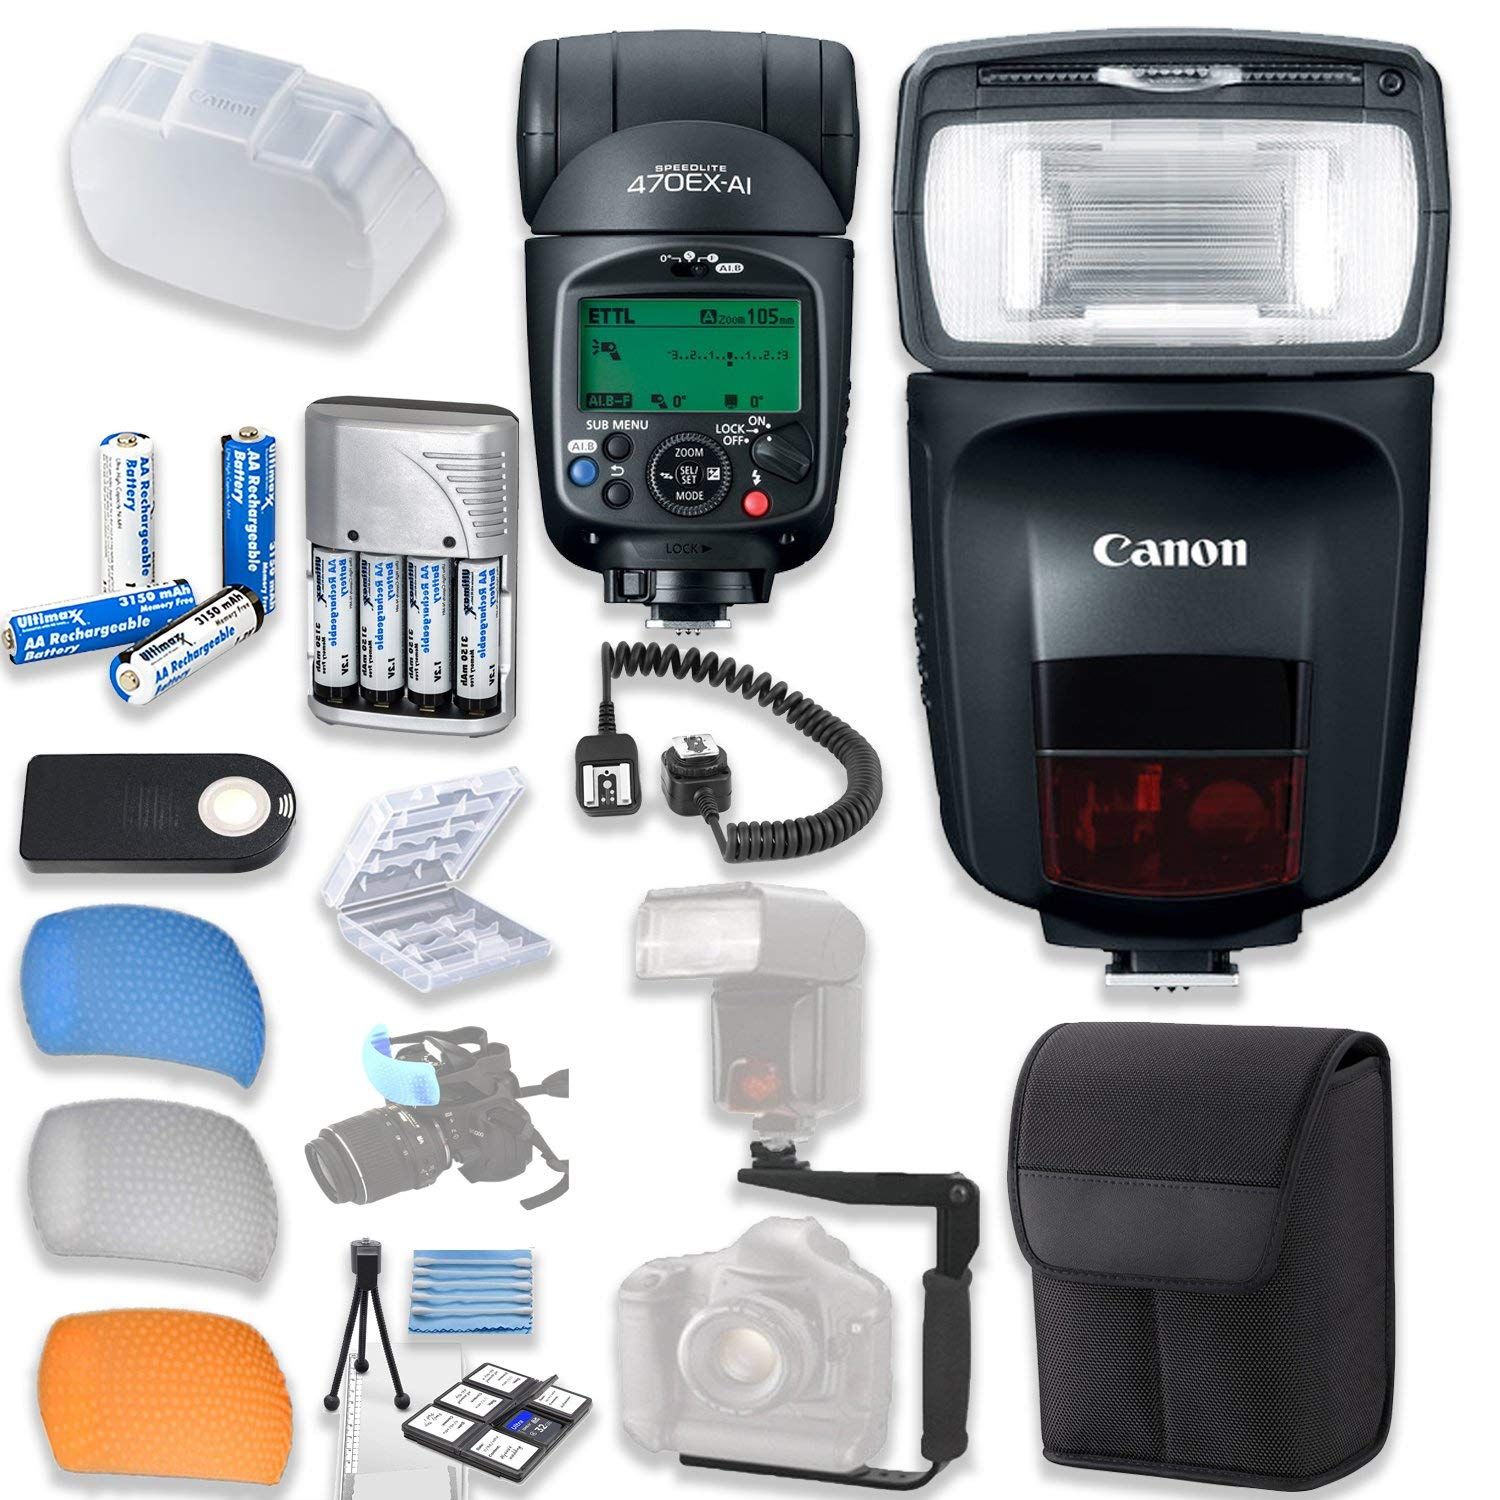 Canon Speedlite 470EX-AI Flash with Canon Speedlite Case + TTL Cord + Flash L-Bracket + Flash Diffusers + 4 High Capacity AA Rechargeable Batteries & Charger + Accessory Bundle